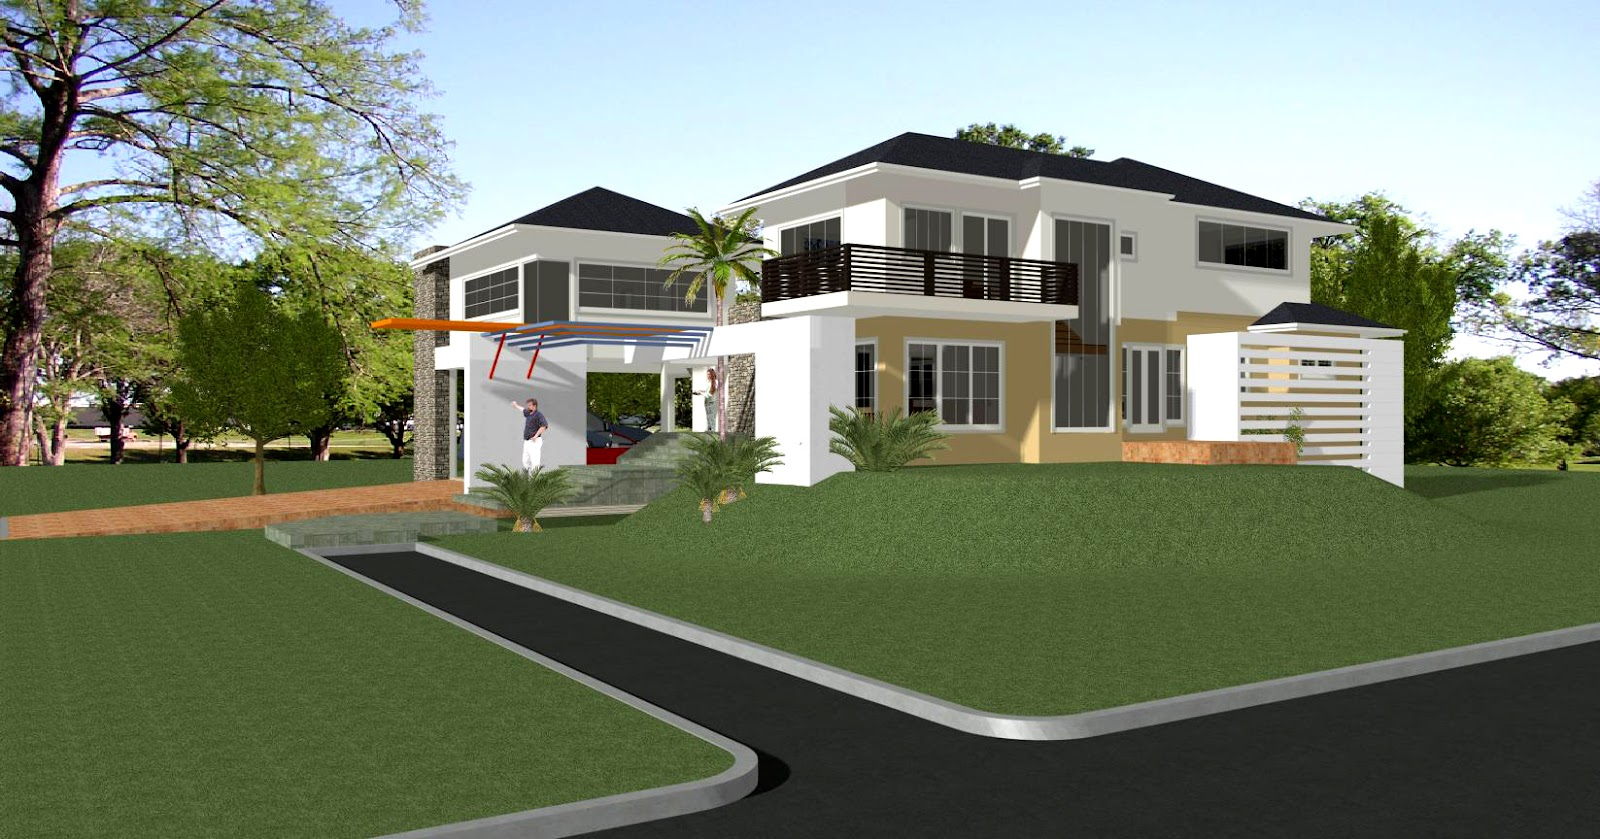 House designs in the philippines in iloilo by erecre group Best new home designs